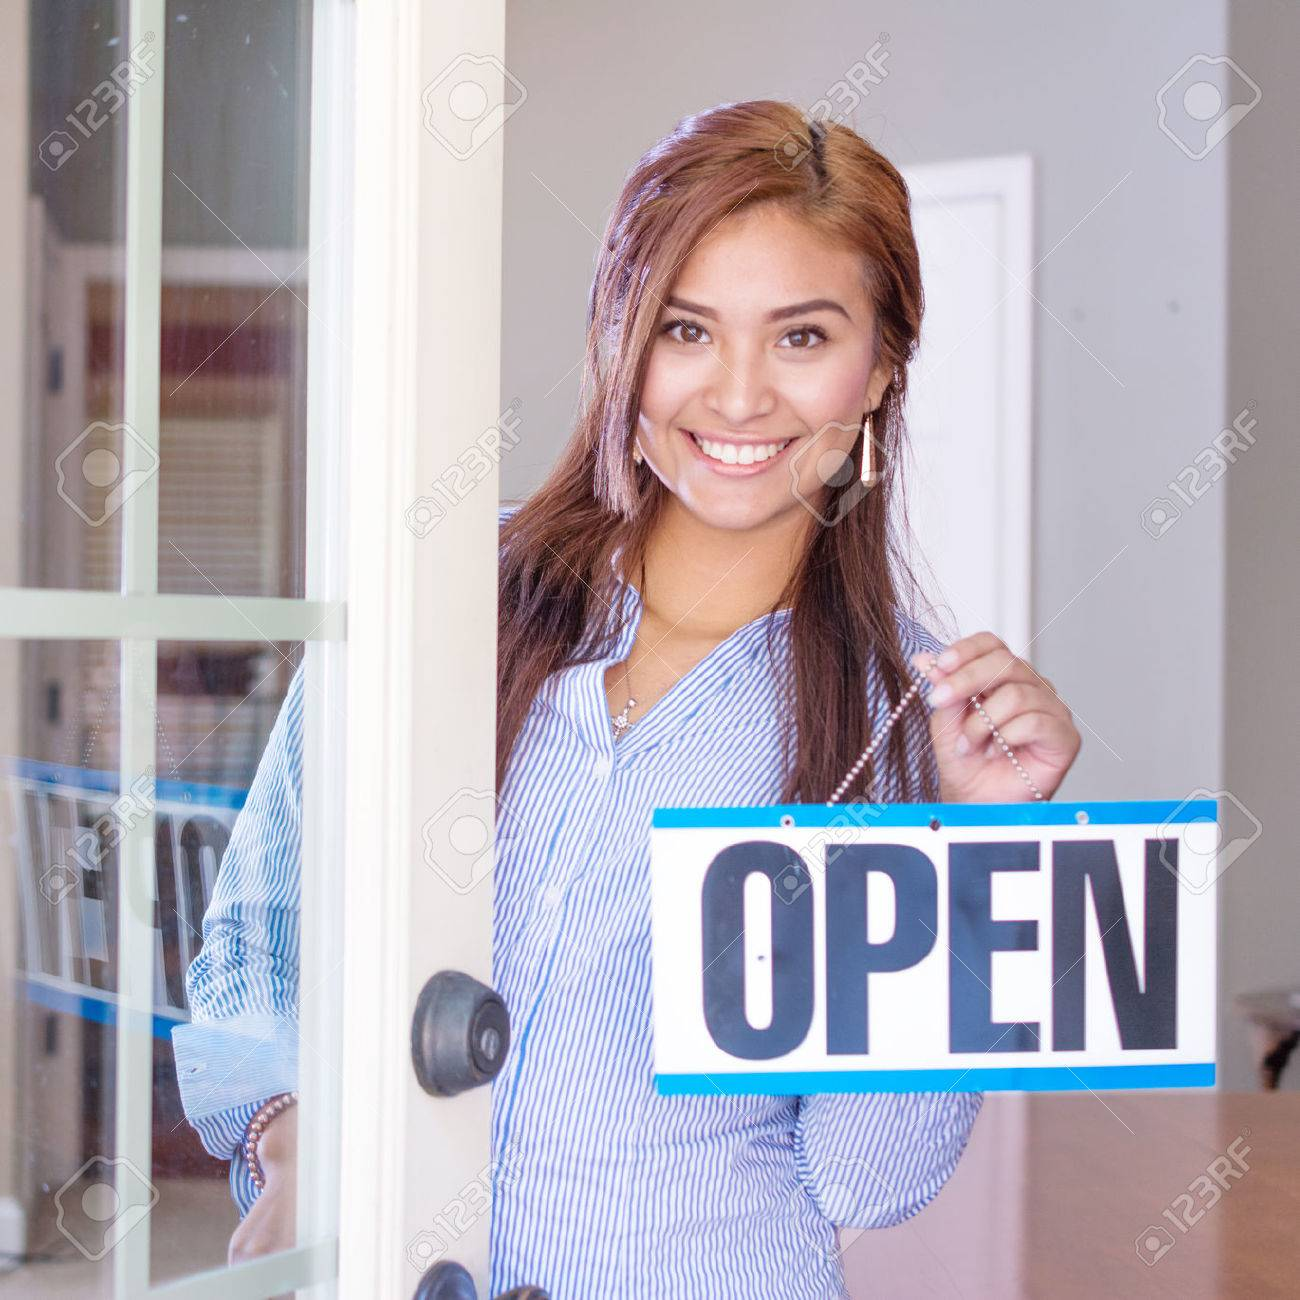 Woman opening her store with an open sign - 45354708